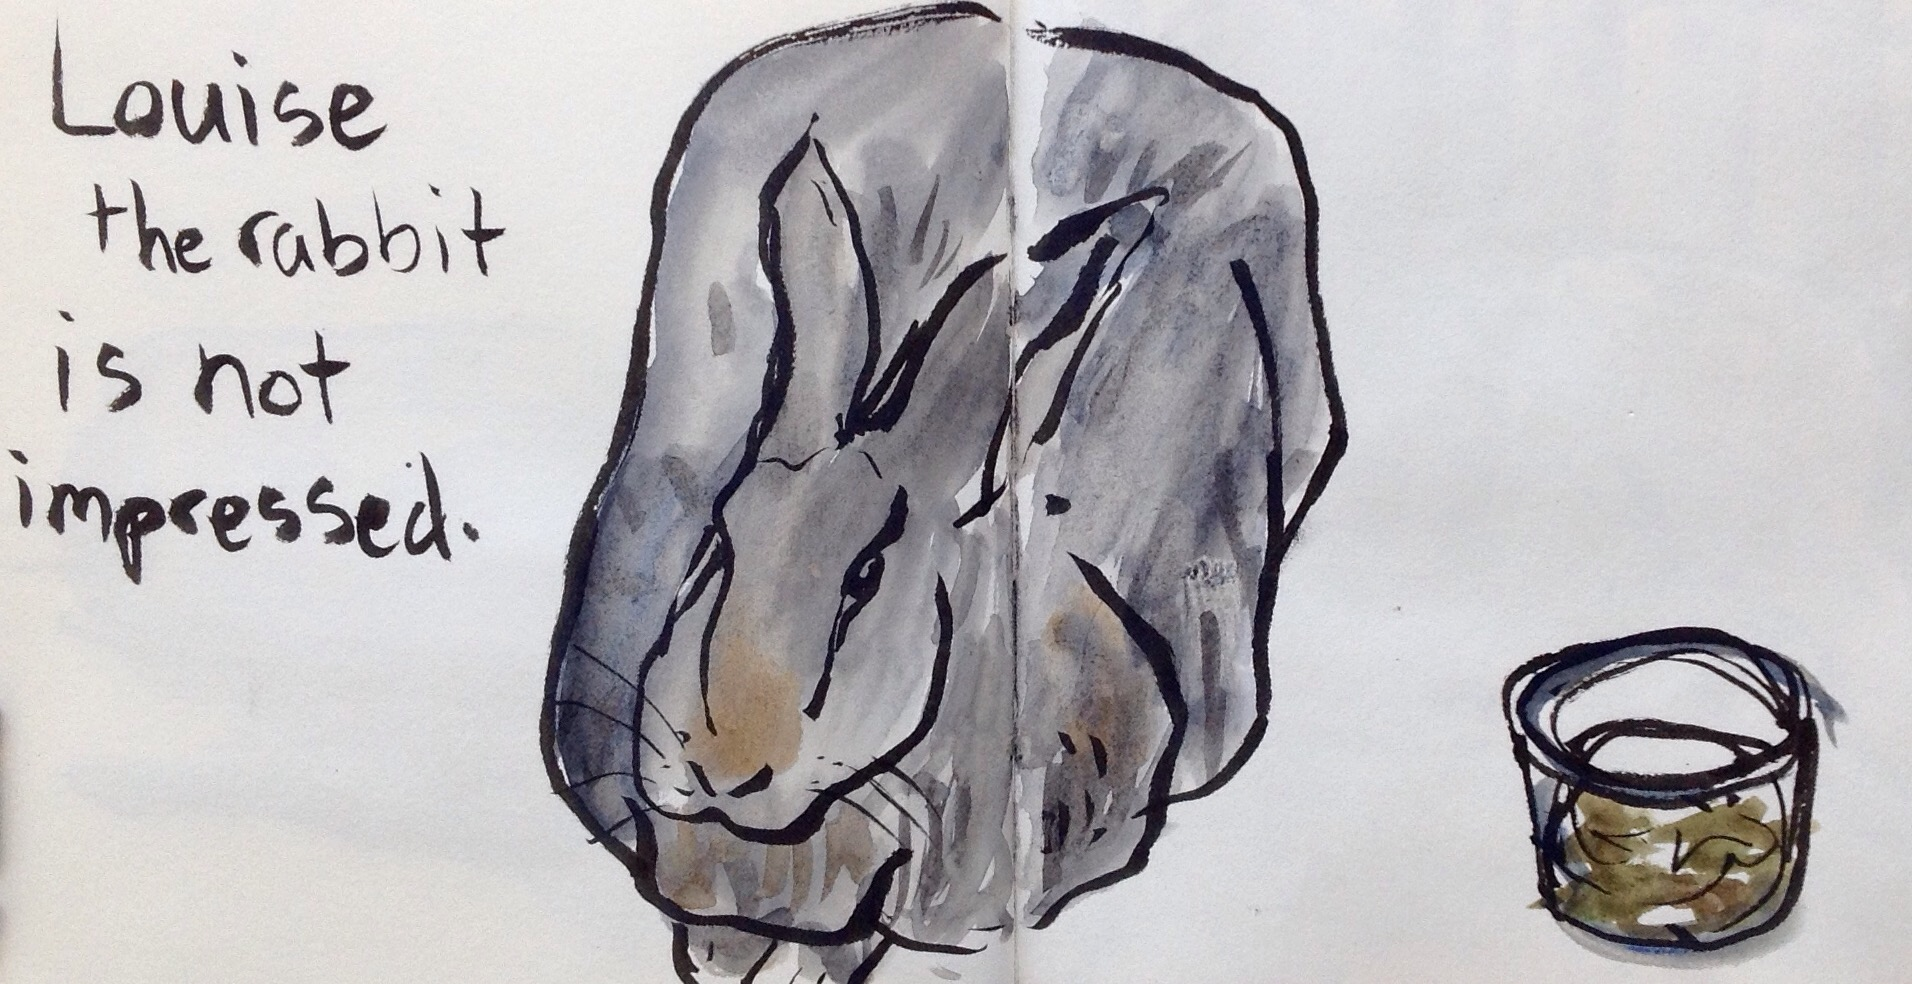 Rabbits are a good animal to sketch at the fair because they are in fairly small cages raised up off the ground. I rested my sketchbook on the edge of their table as I drew.